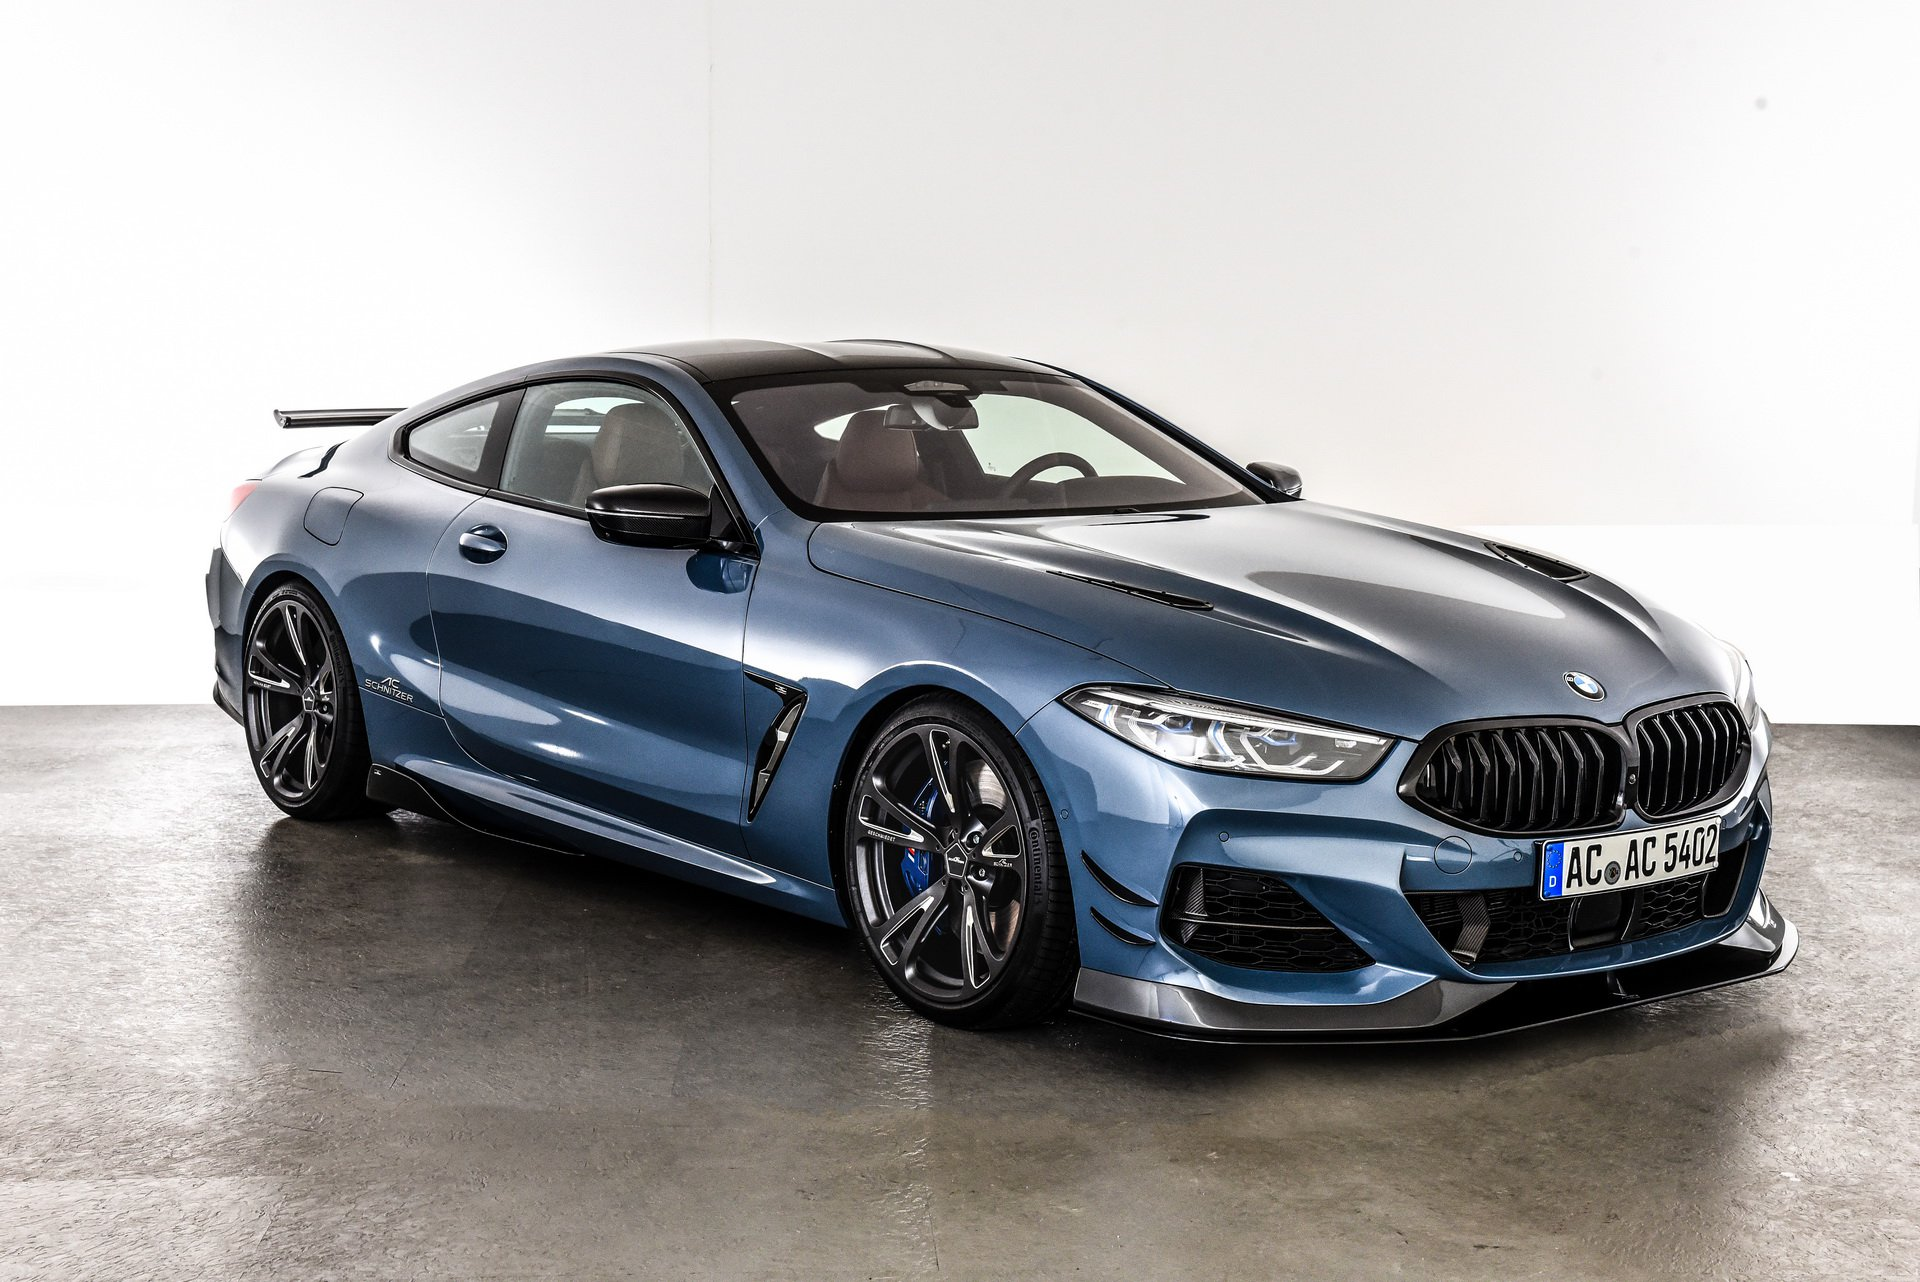 ac schnitzer bmw 8 series coupe looks furious. Black Bedroom Furniture Sets. Home Design Ideas